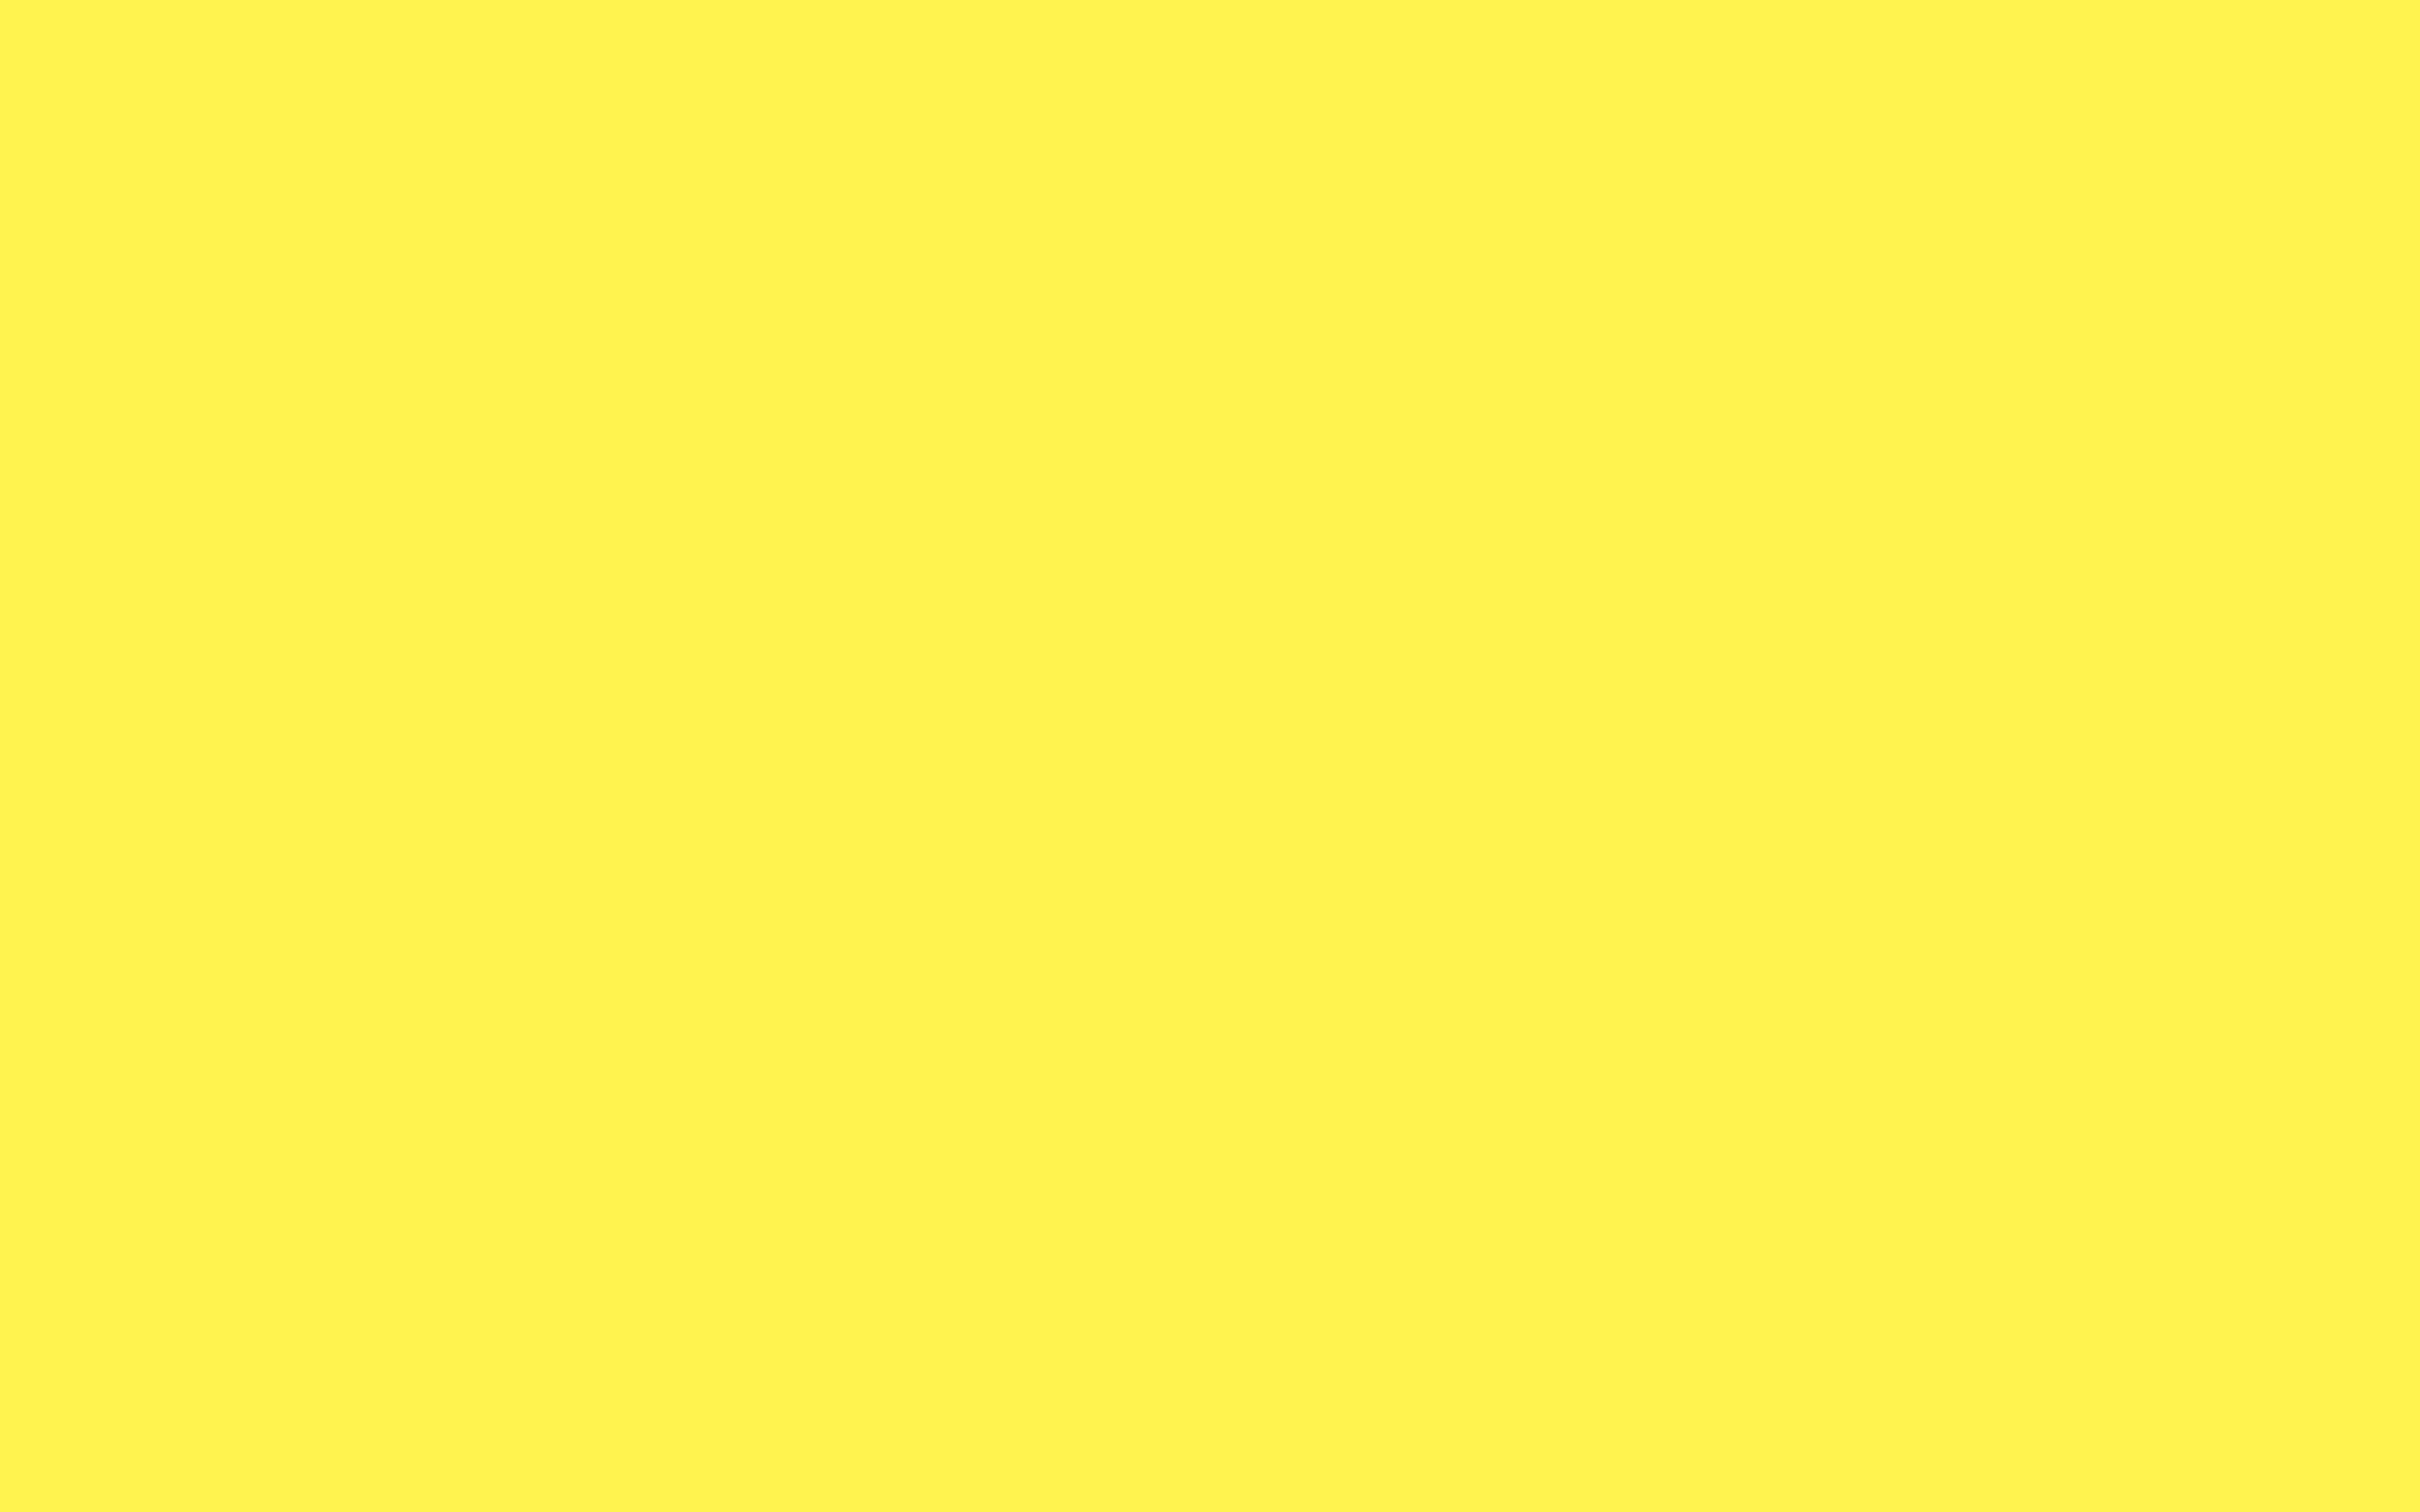 2880x1800 Lemon Yellow Solid Color Background